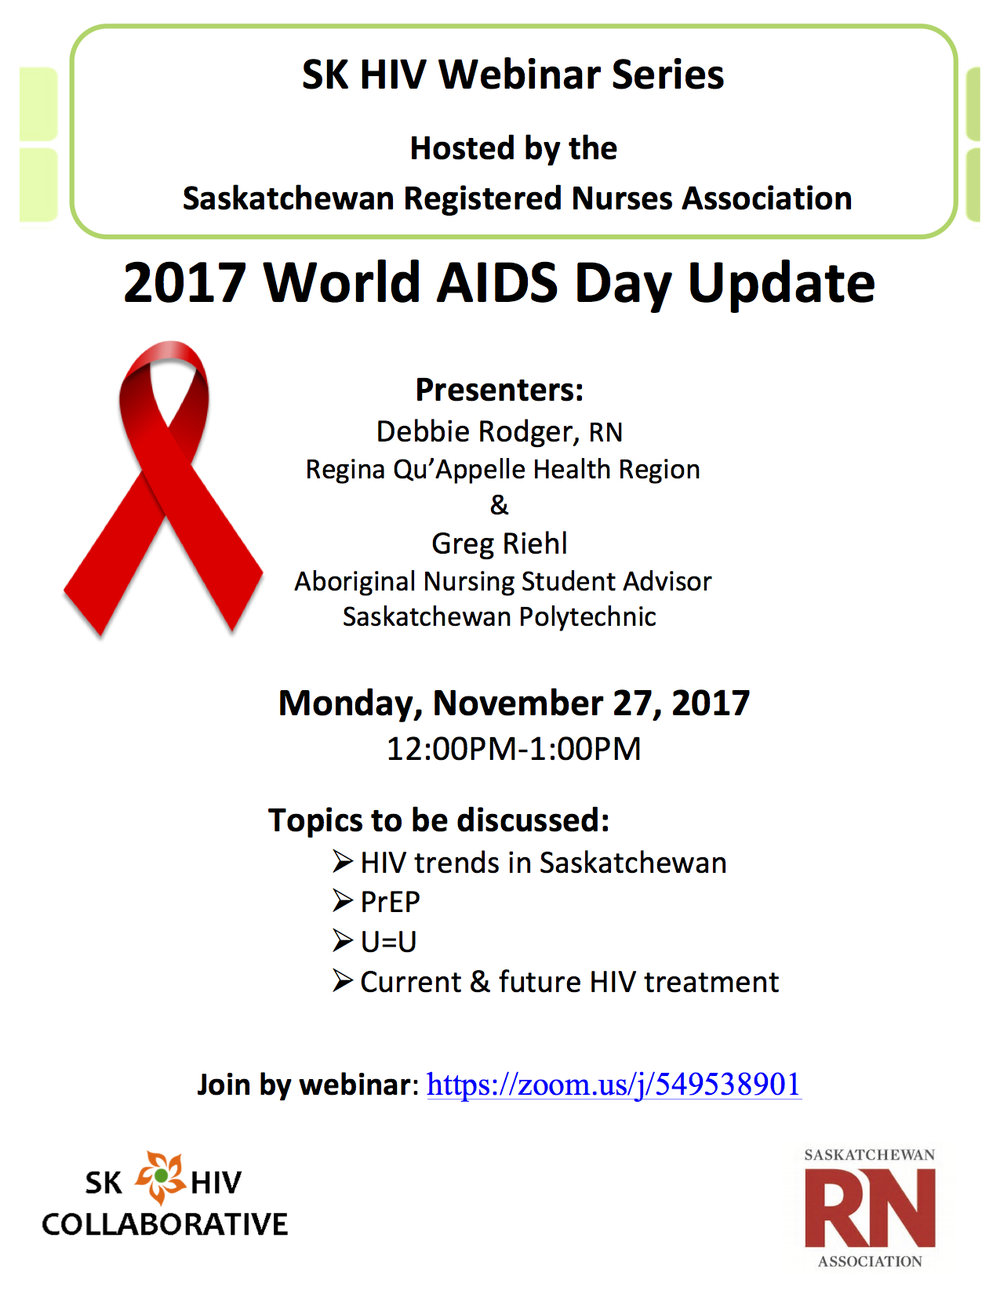 November 27 Webinar - 2017 World AIDS Day Update.jpg